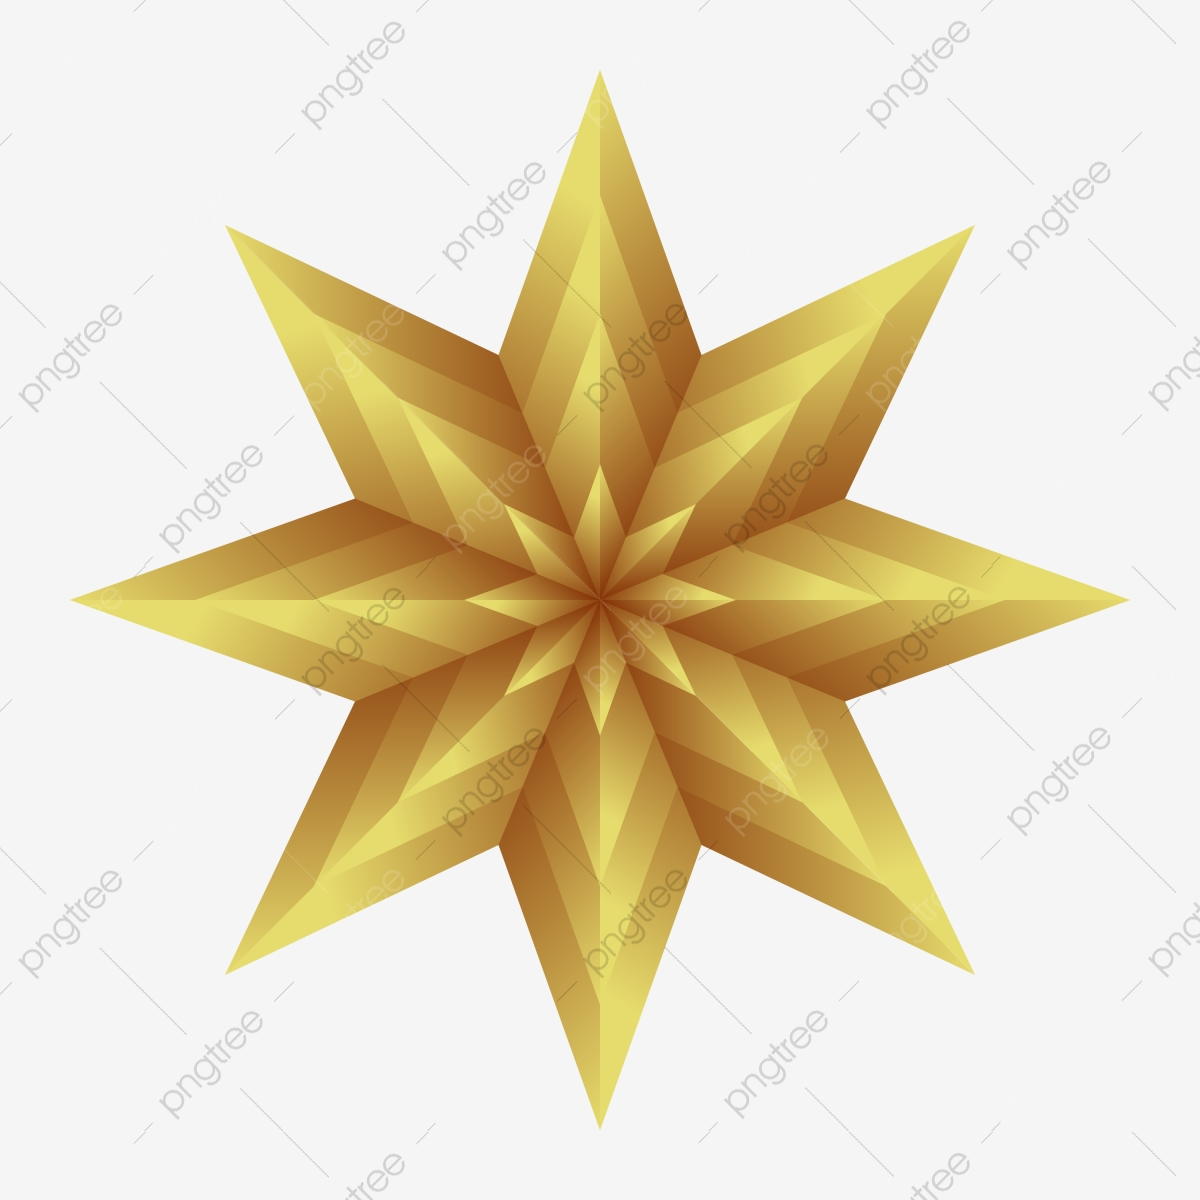 Golden Shining Star With Eight Corners For Christmas Celebration Event Graphic Ball Png And Vector With Transparent Background For Free Download